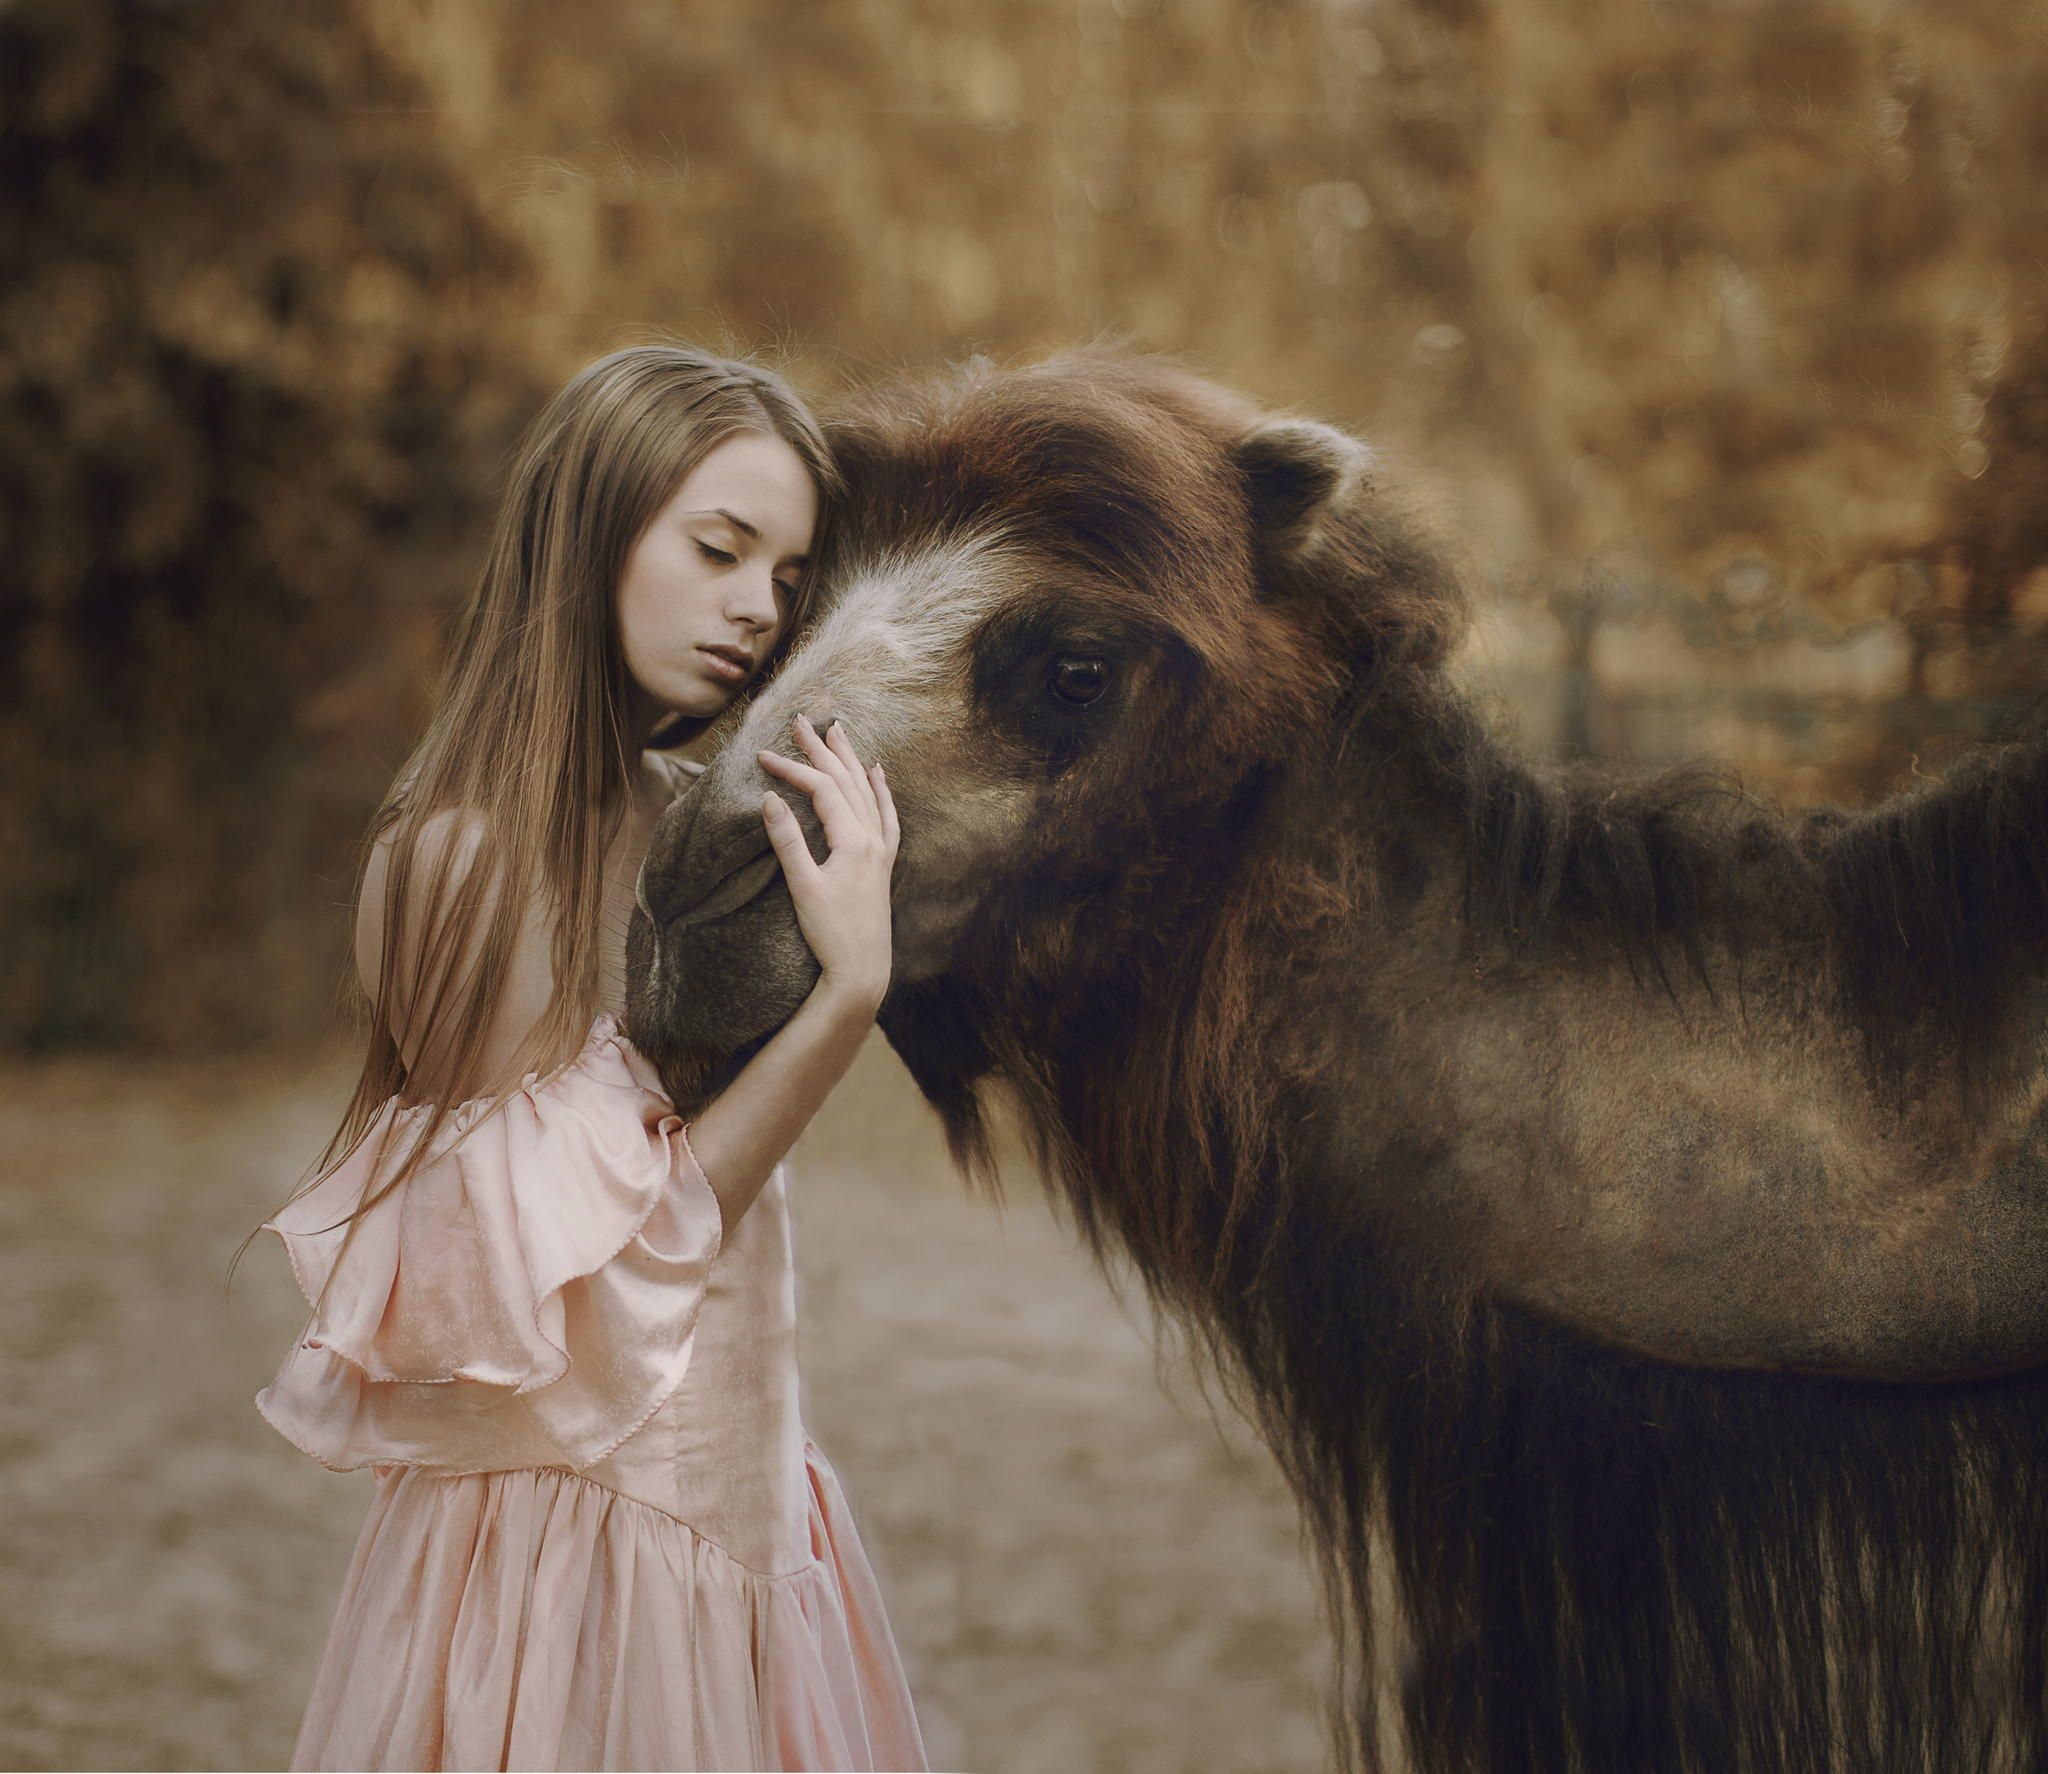 Photograph Untitled By Katerina Plotnikova On Px - Russian photographer takes enchanting fairytale photos featuring wild animals